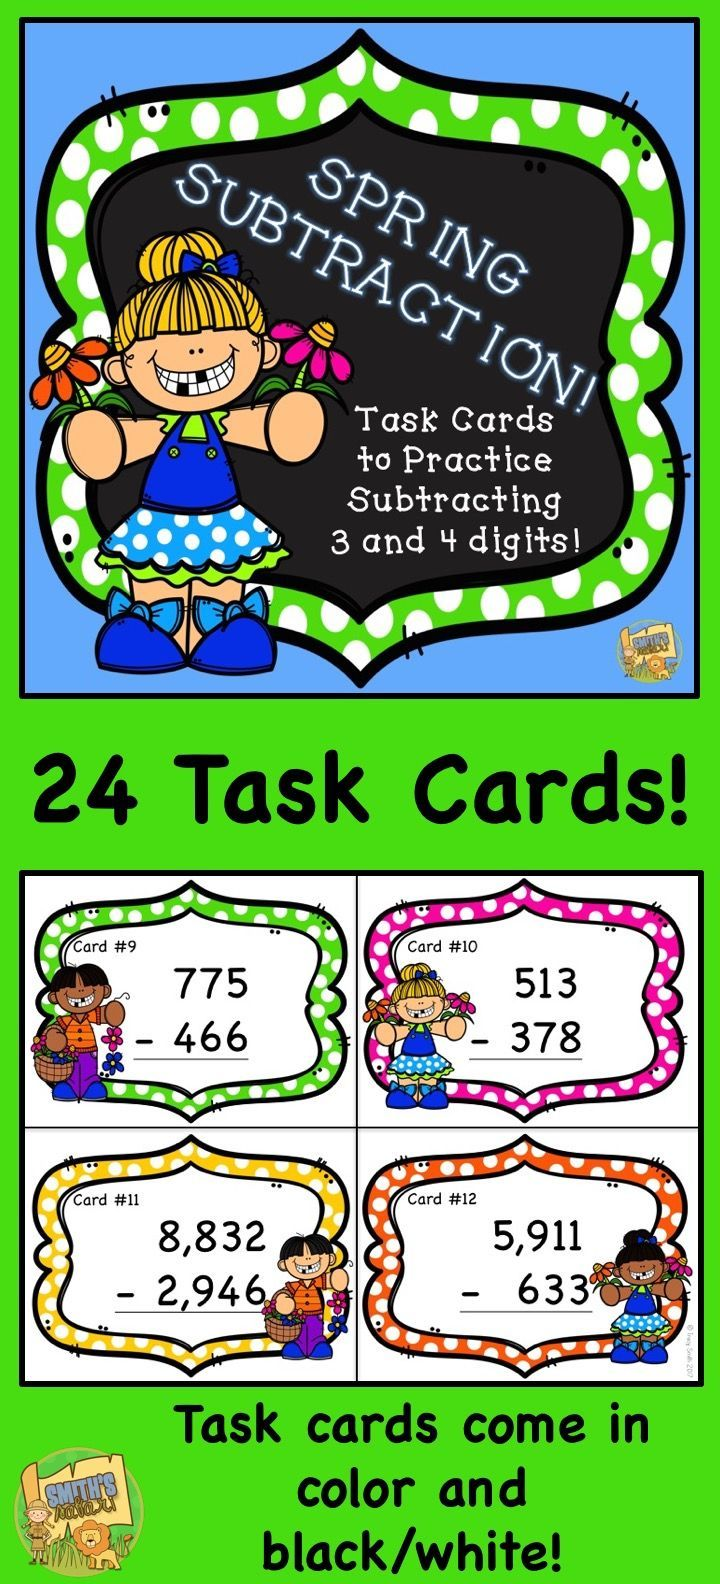 Subtraction - 3 and 4 digits! With Regrouping! 24 task cards to make ...